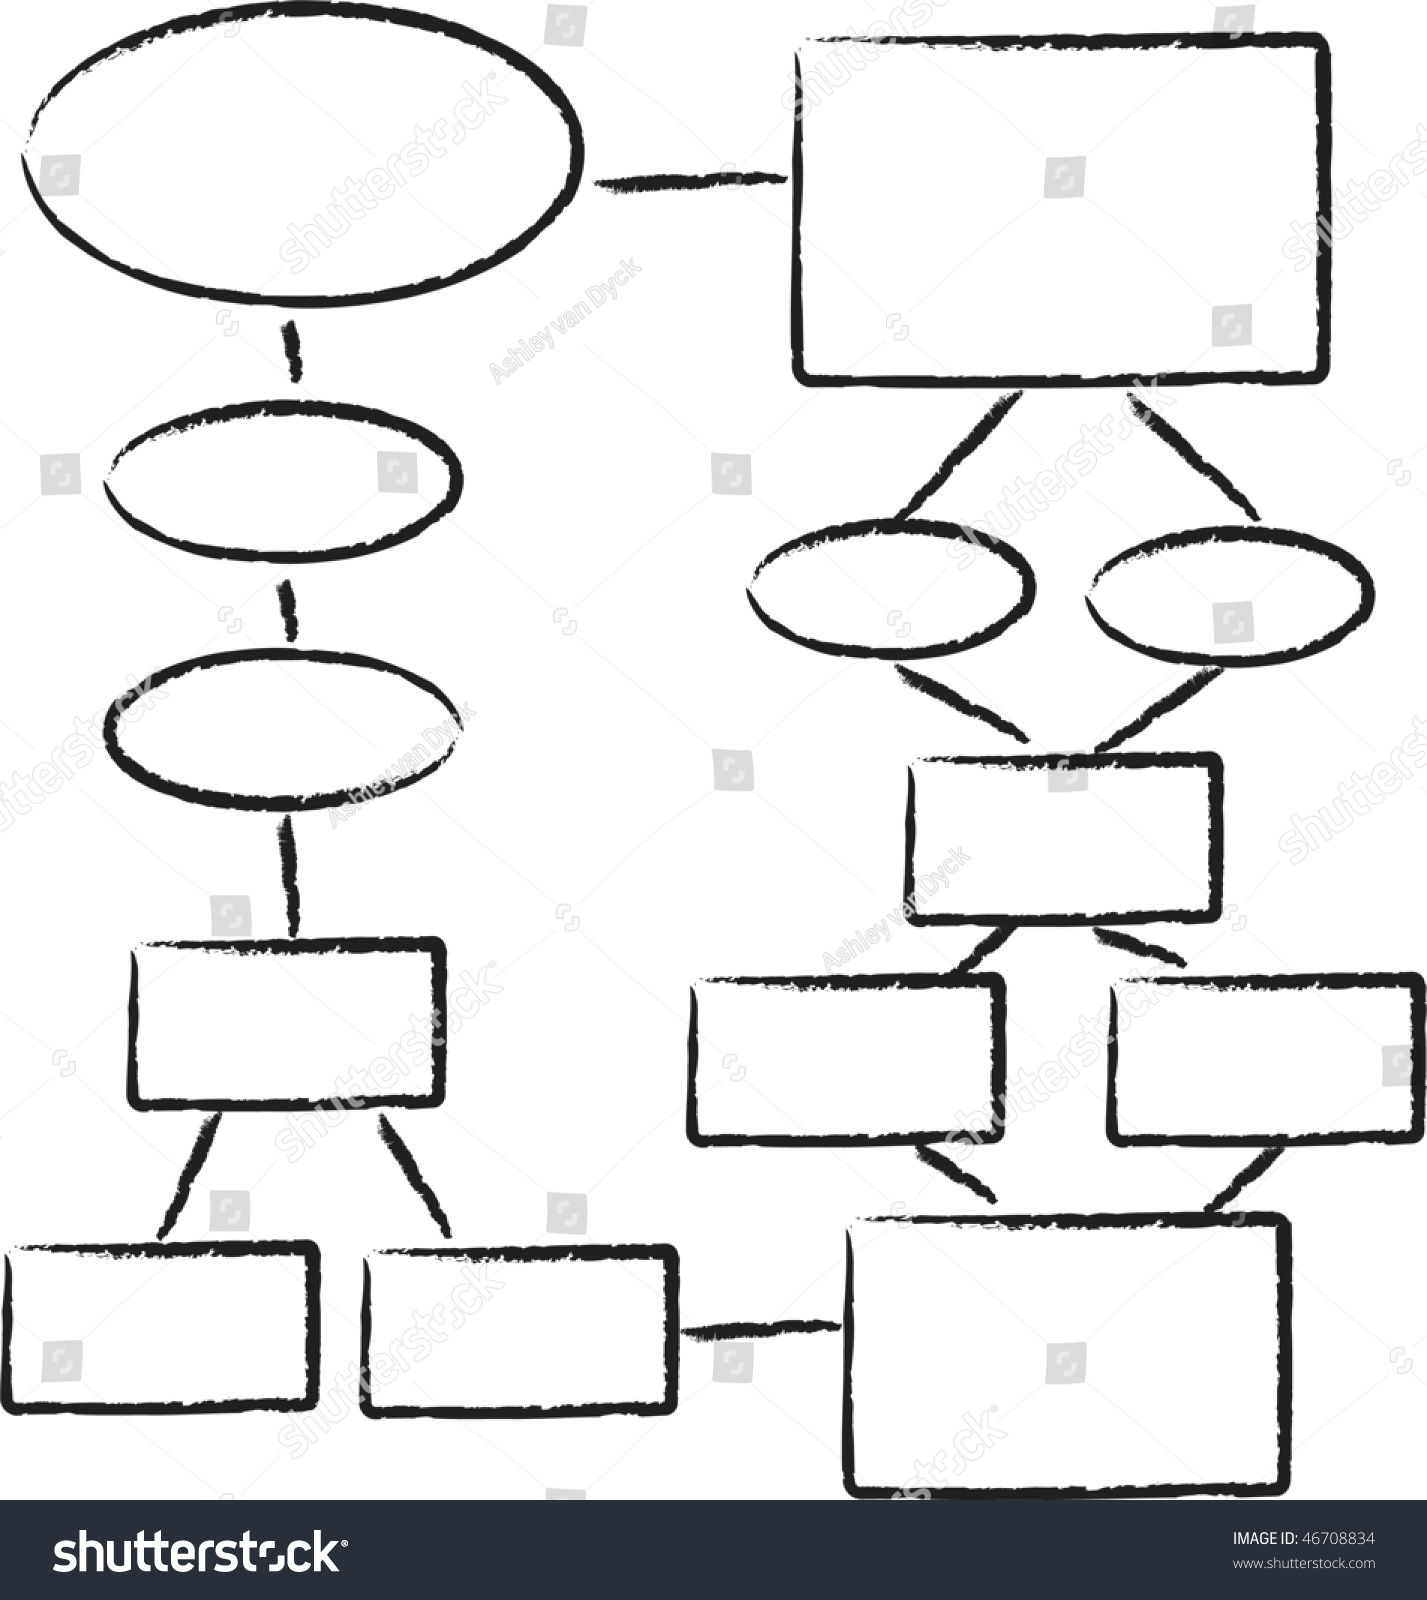 A Hand Drawn Looking Flowchart Template